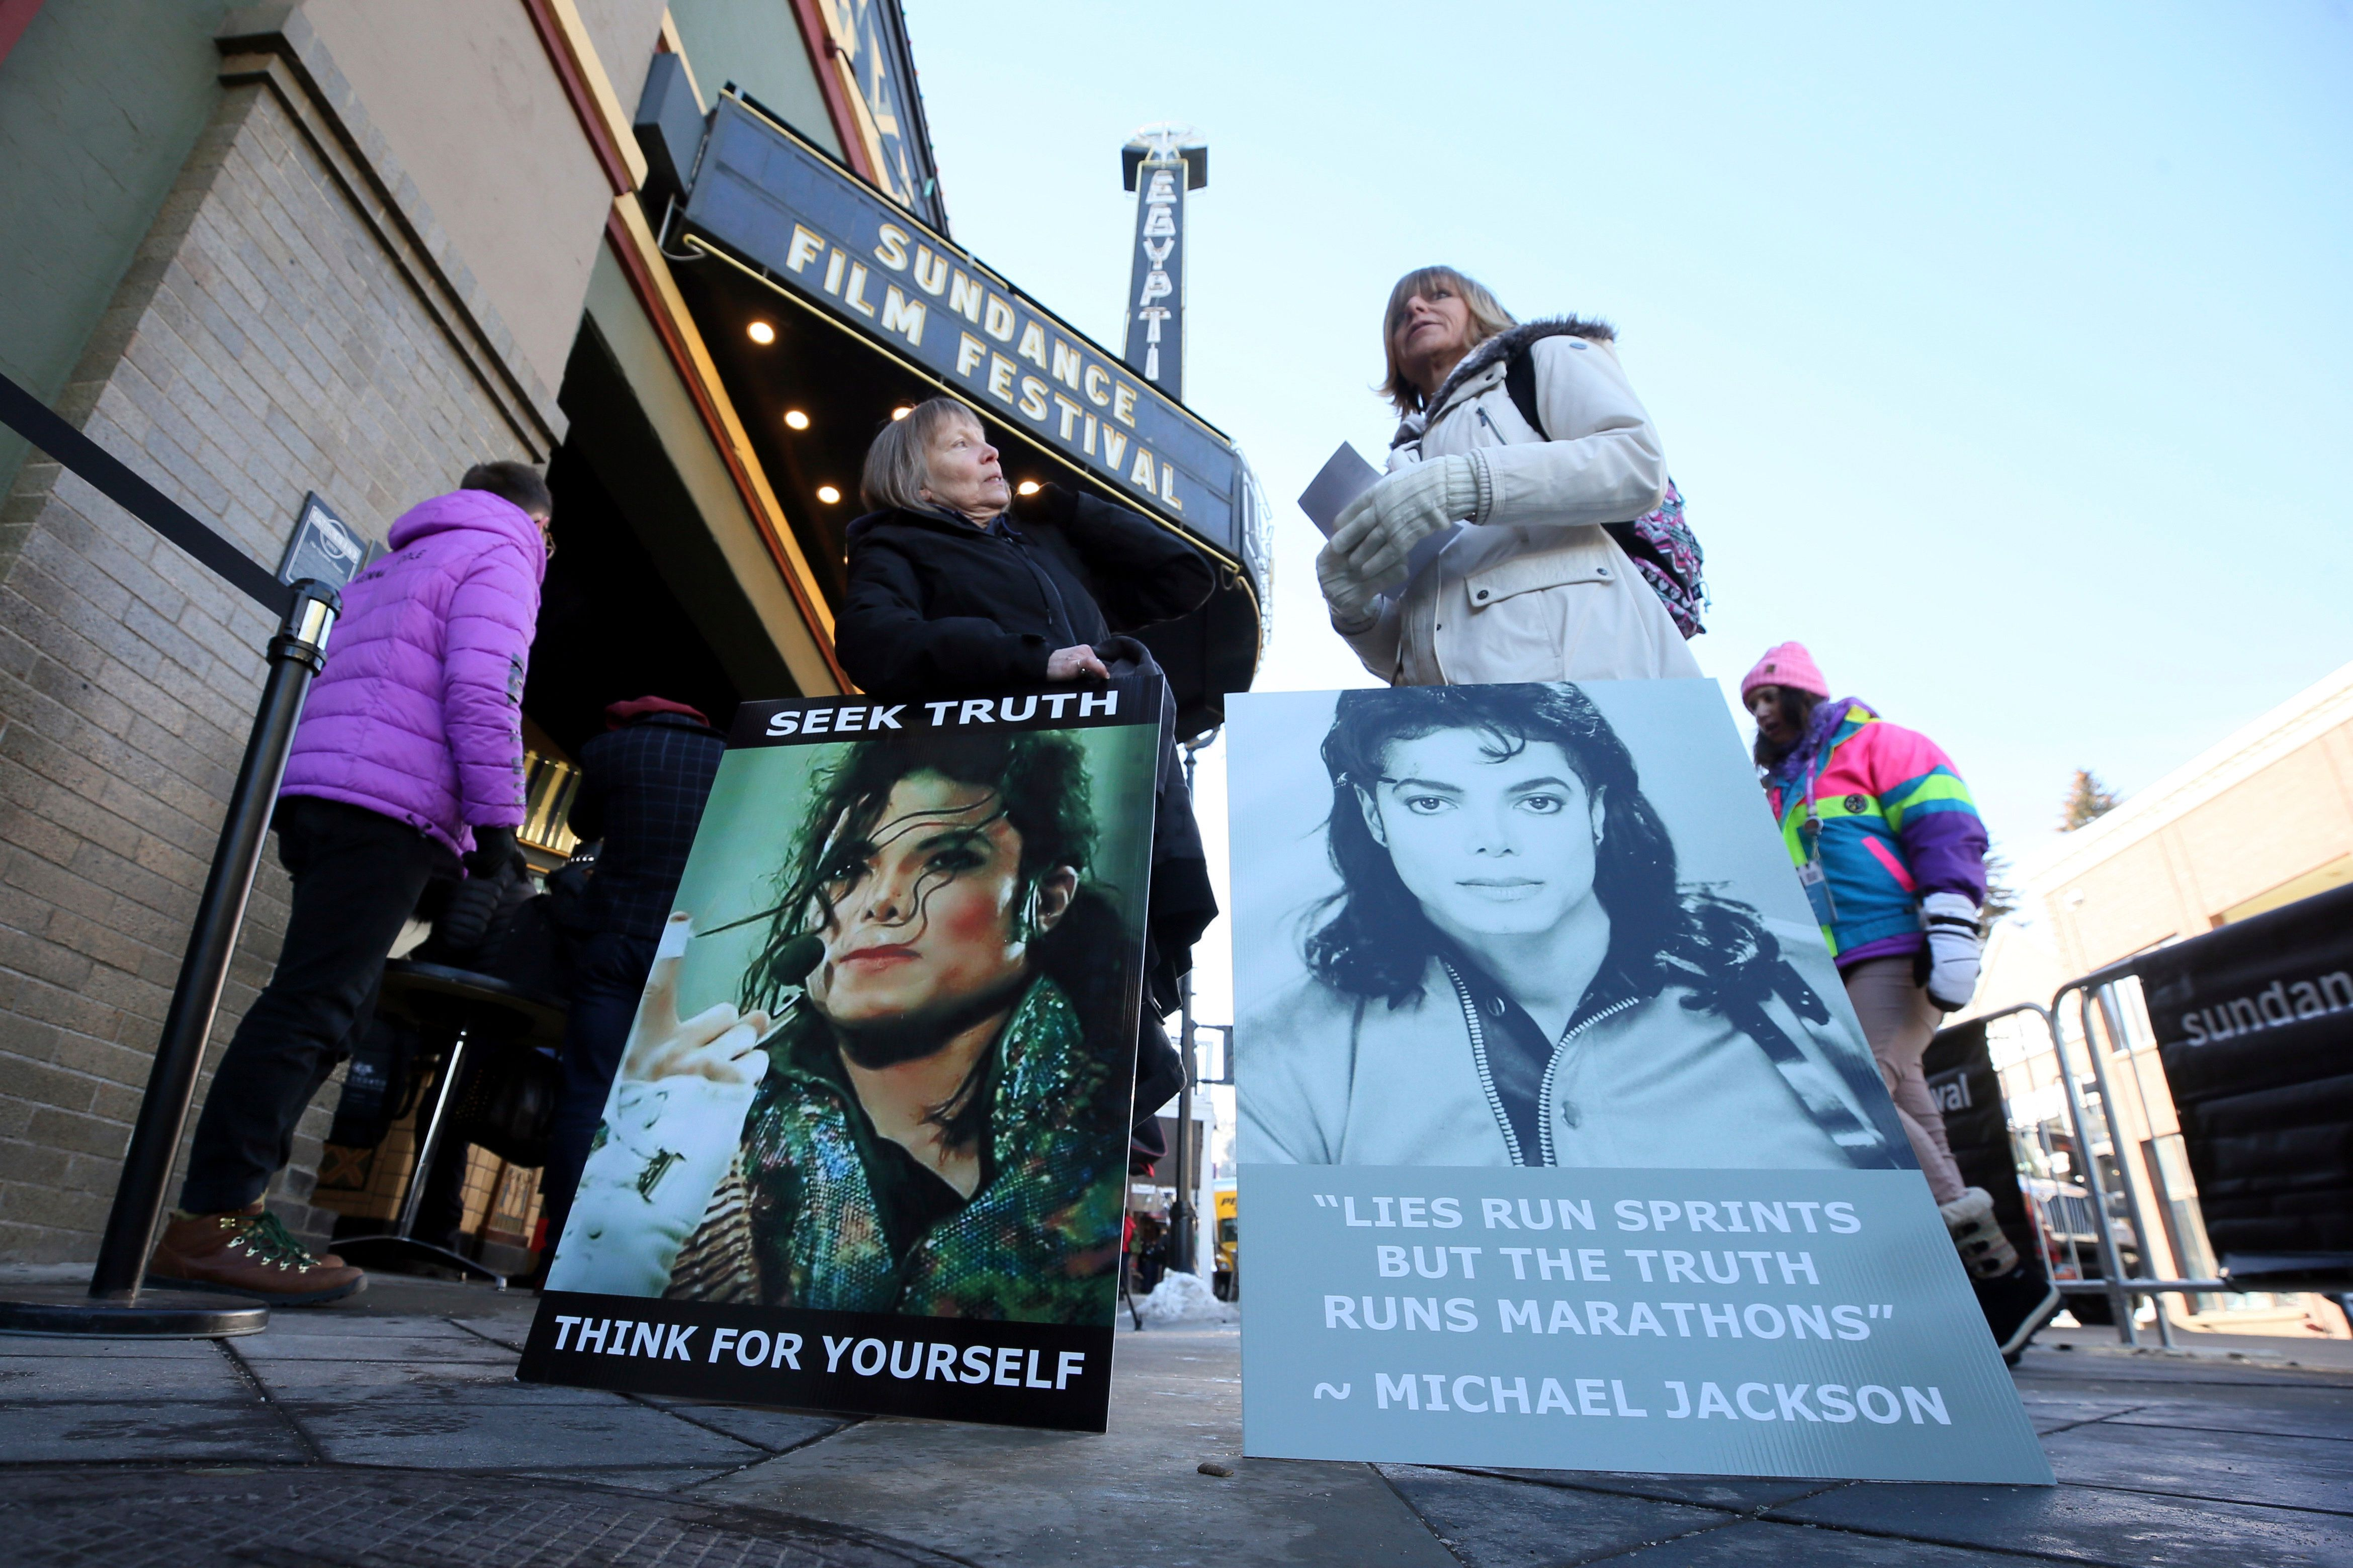 Leaving Neverland: The Controversial Michael Jackson Doc Is The Most-Talked About Film At